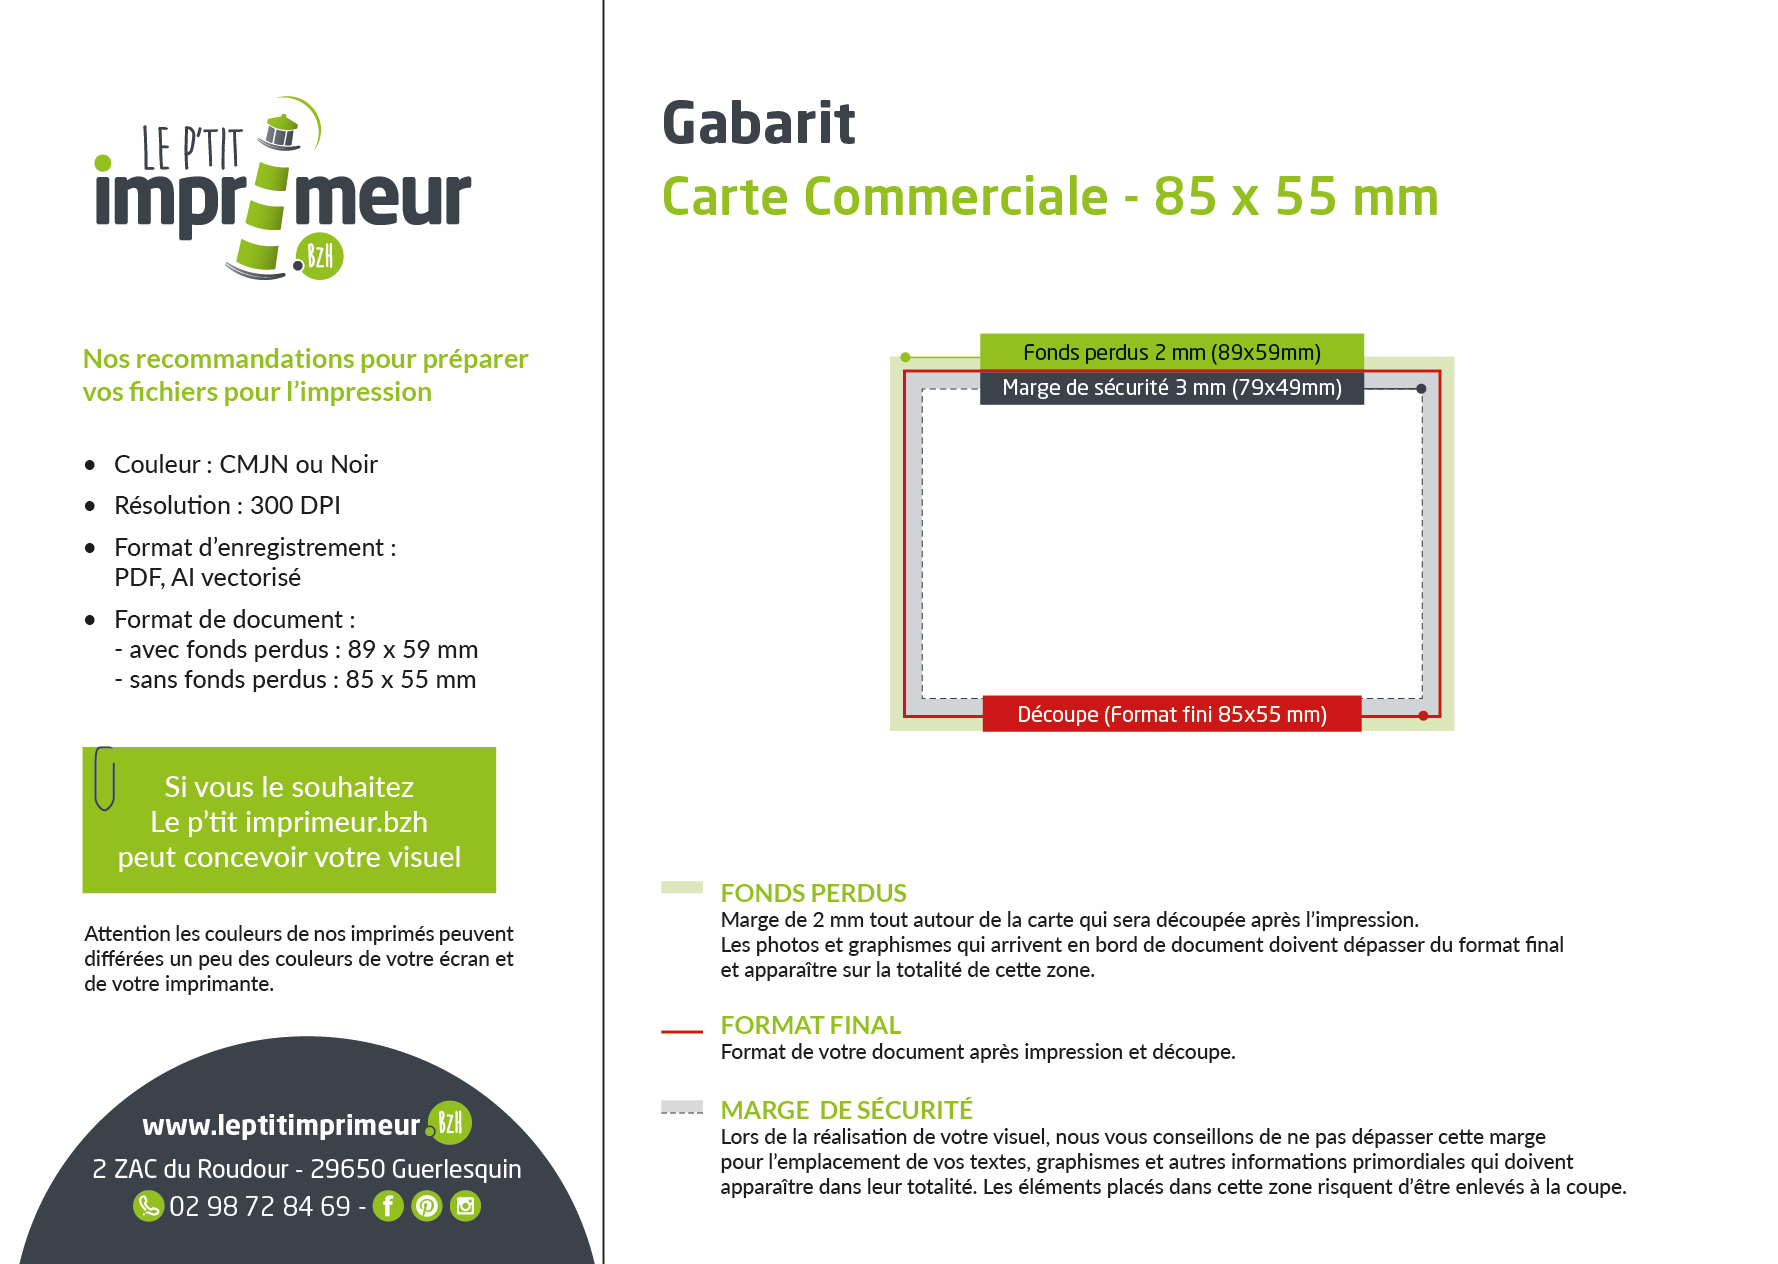 Gabarit carte comm 85 x 55 mm  recto verso